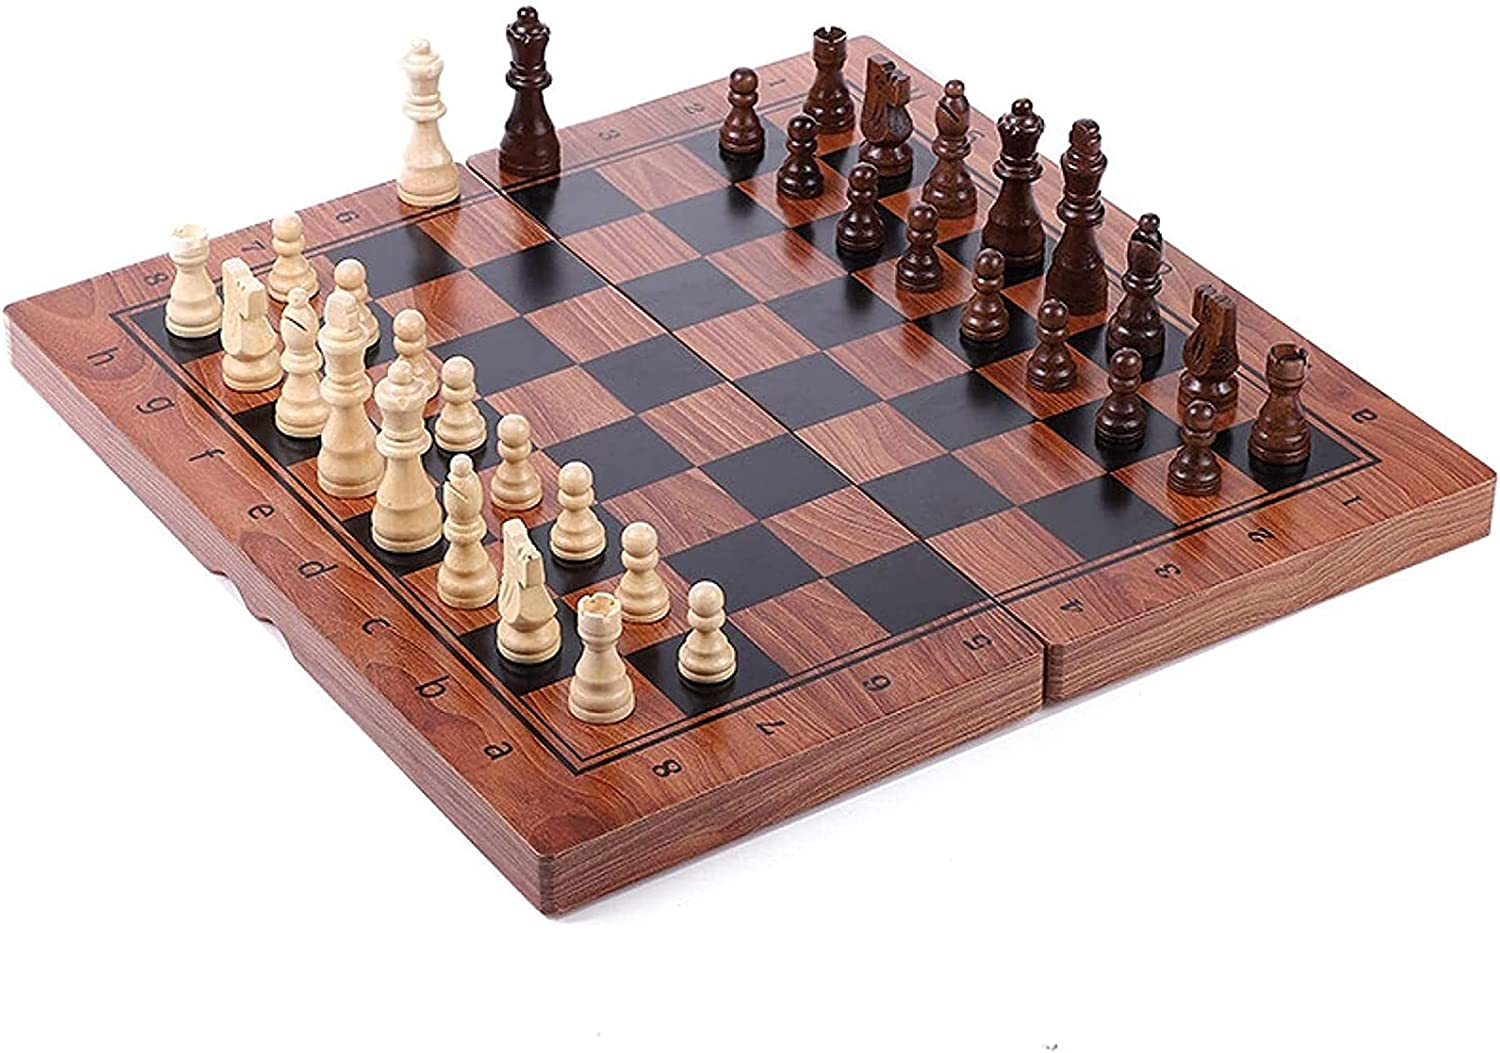 Outlet ☆ Free NEW before selling Shipping MTCWD Chess Set Magnetic Board Portable Wood